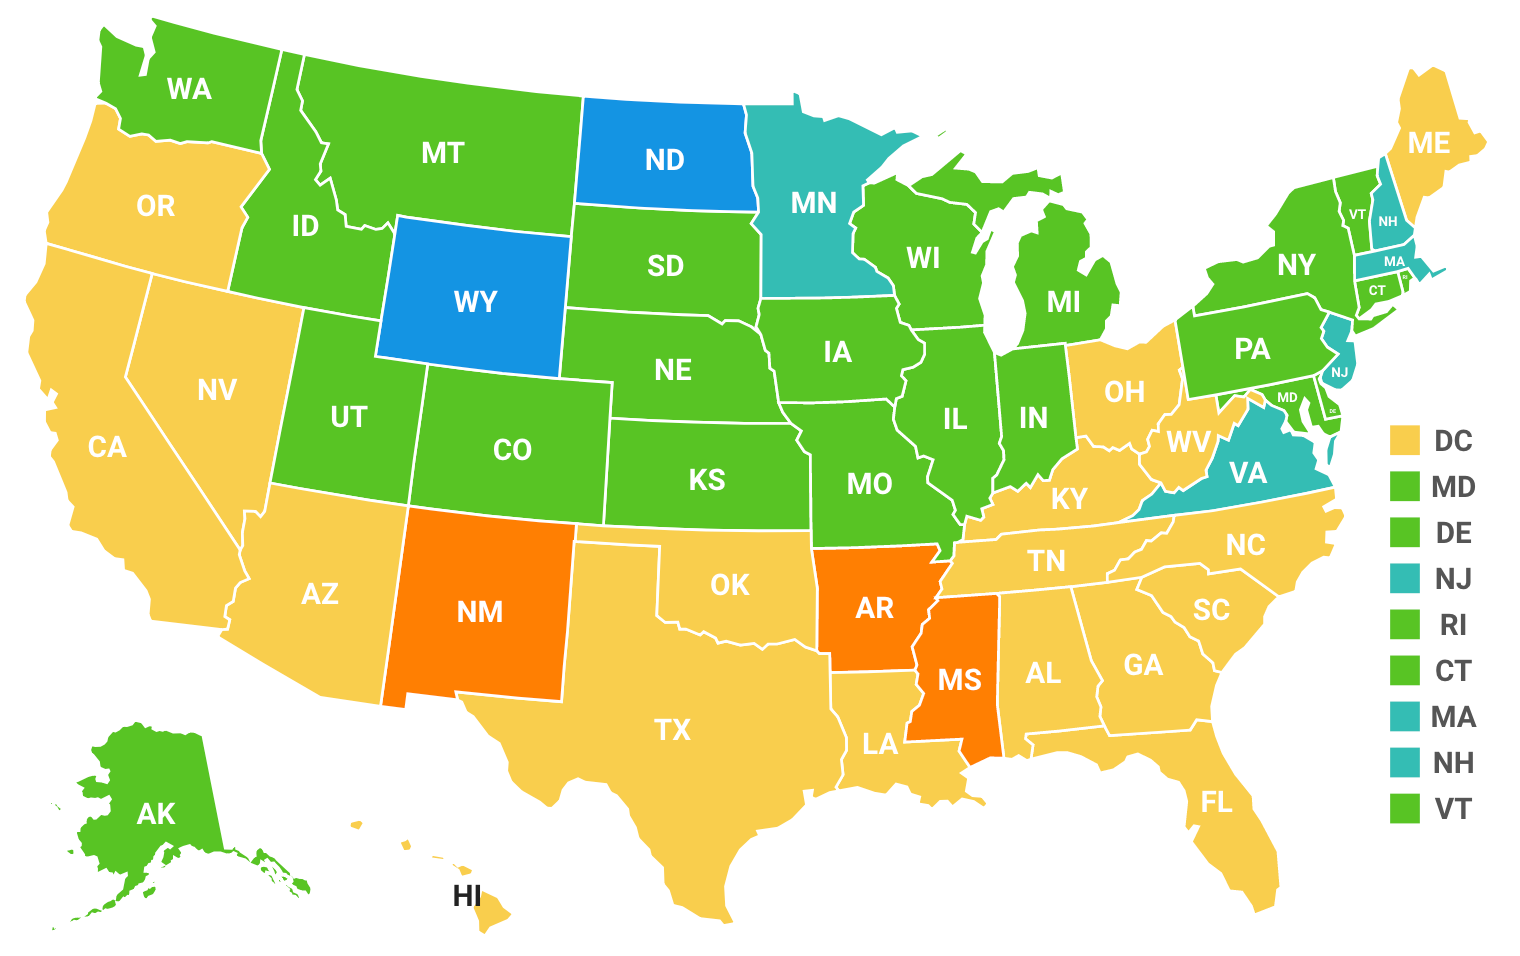 Map of the United States showing food insecurity around the country